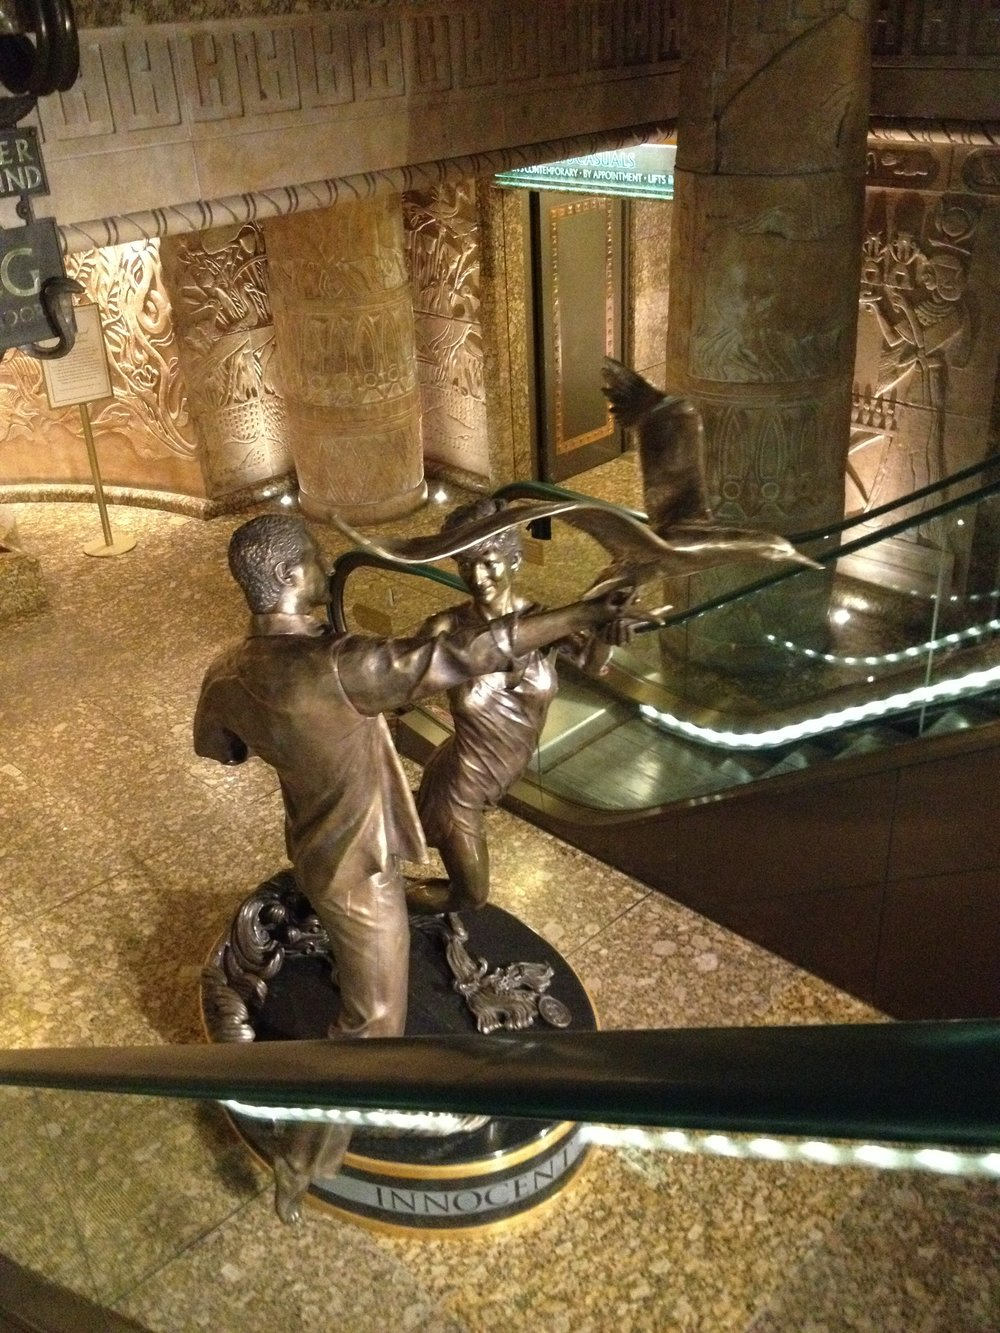 The Dodi & Diana memorial at the bottom of the Egyptian escalator